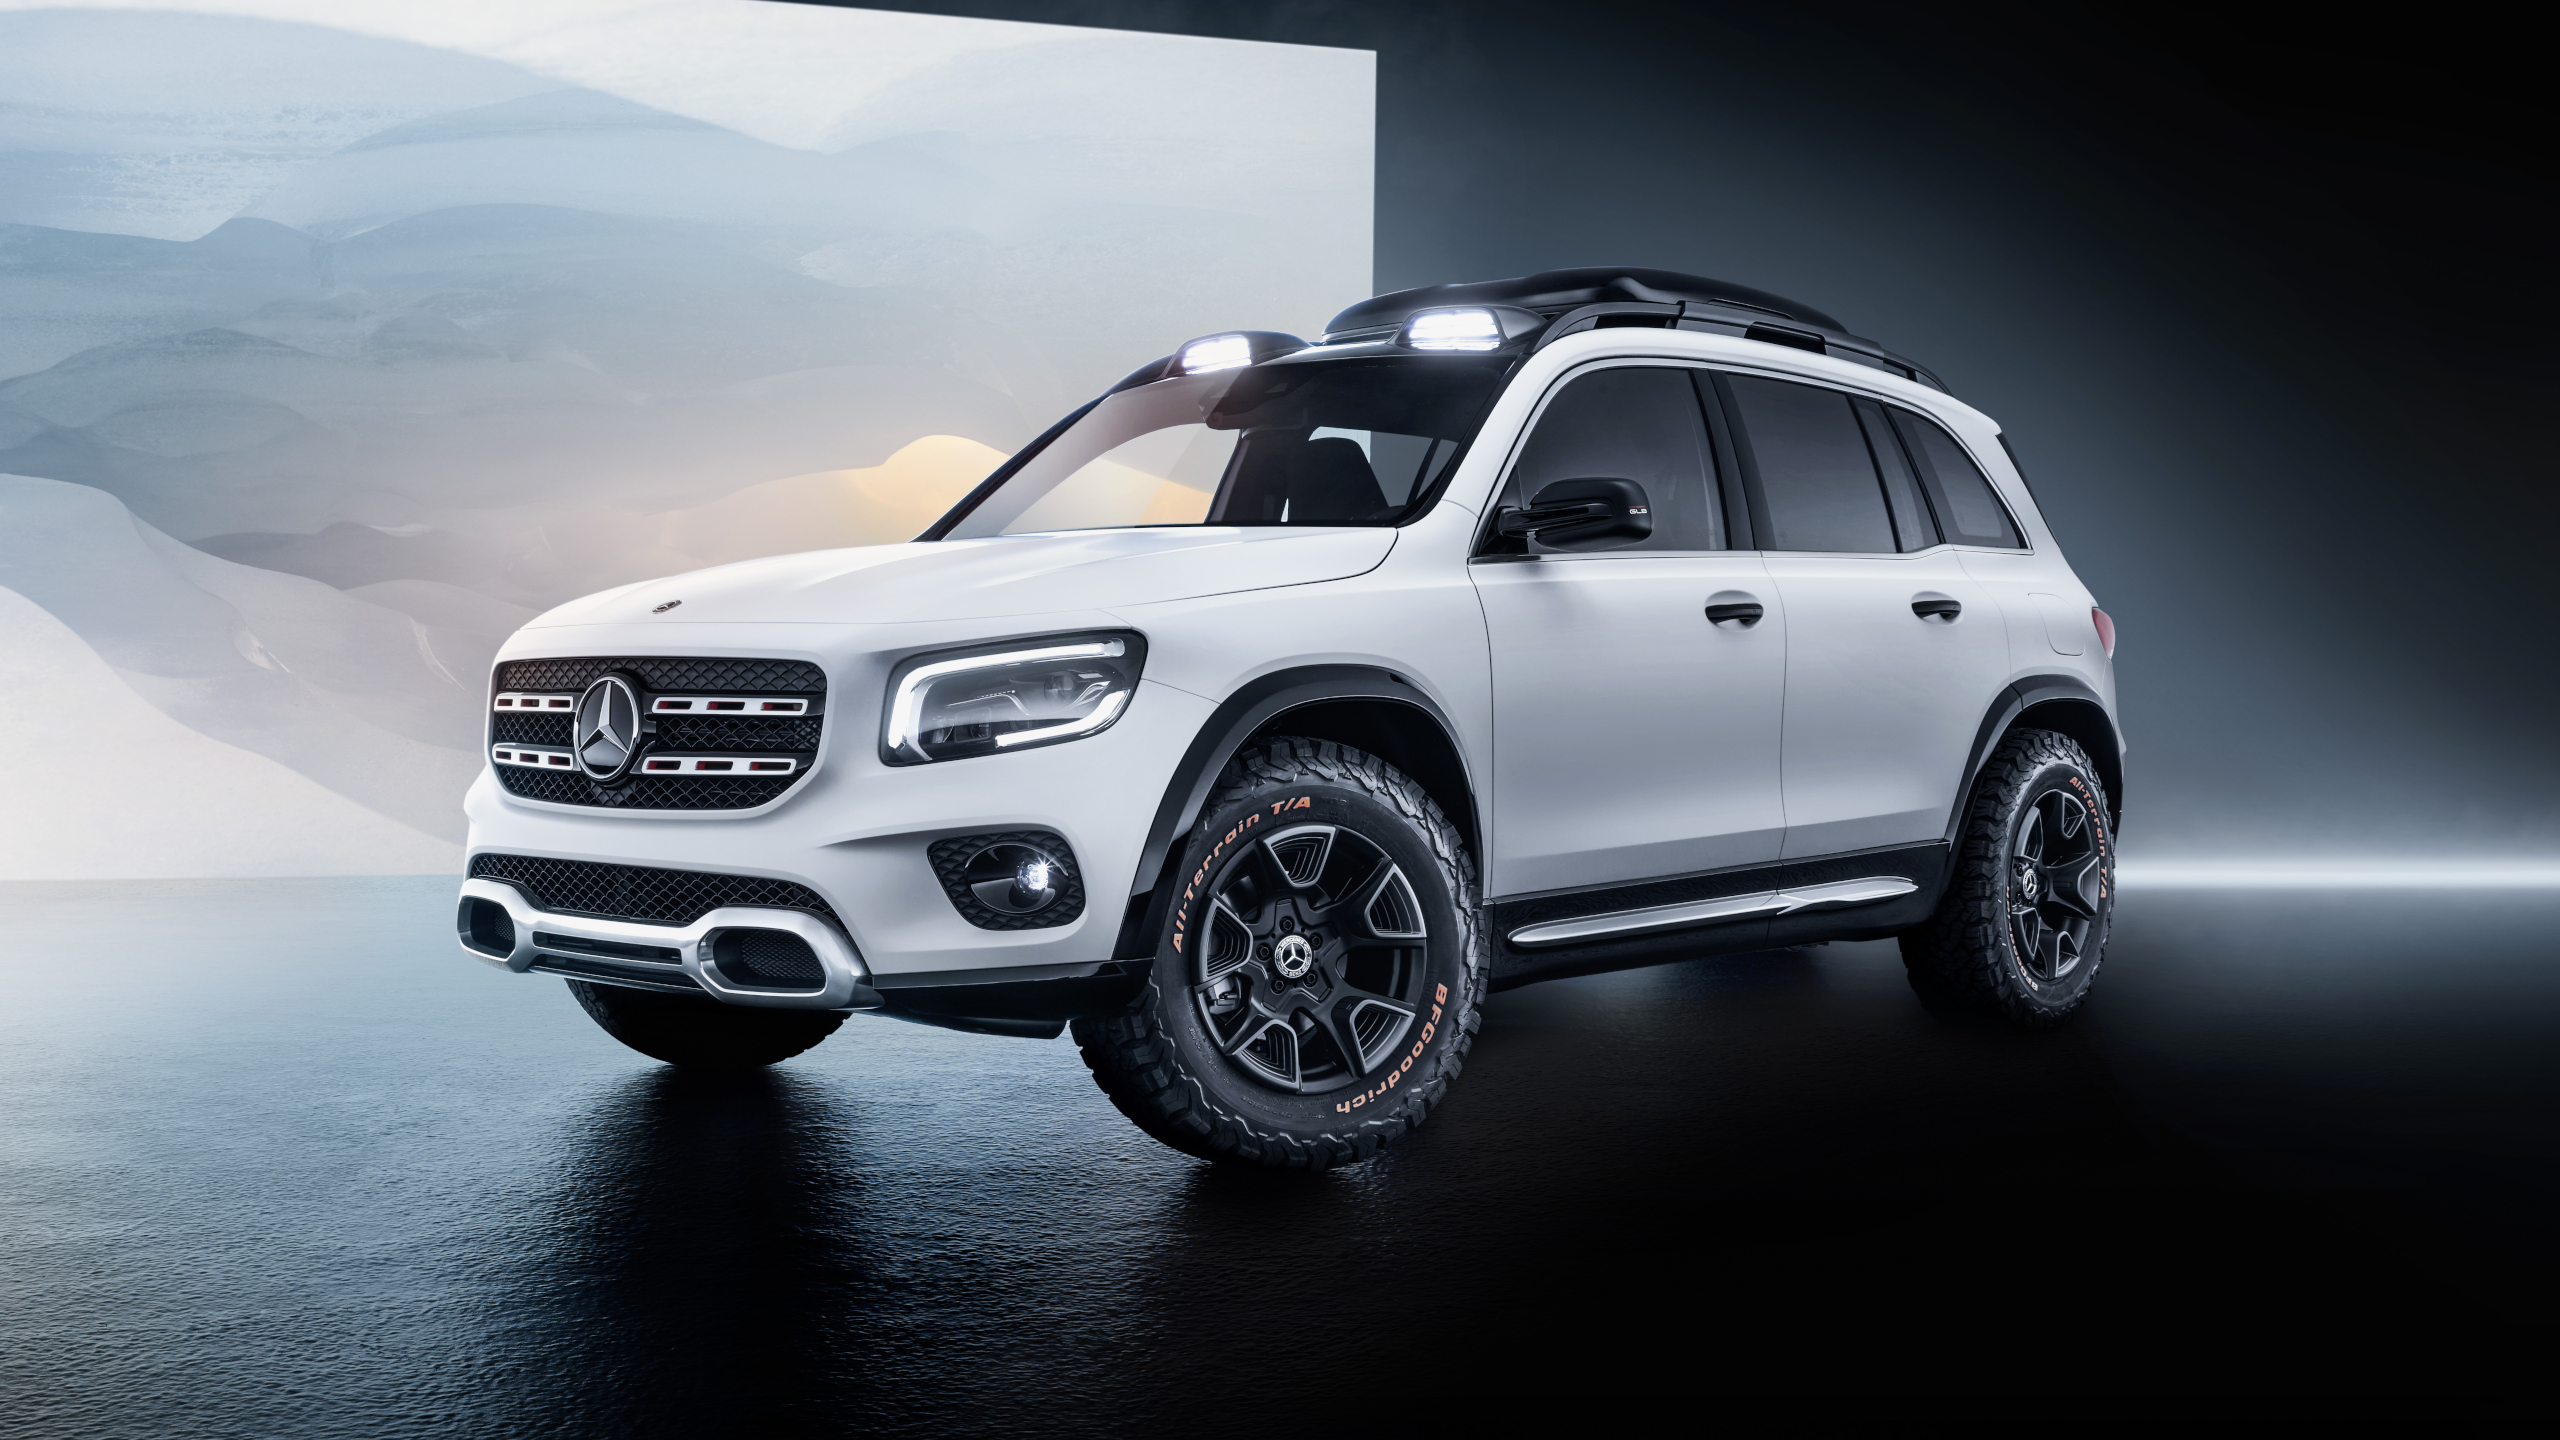 World premiere of the Mercedes Benz Concept GLB 2560x1440